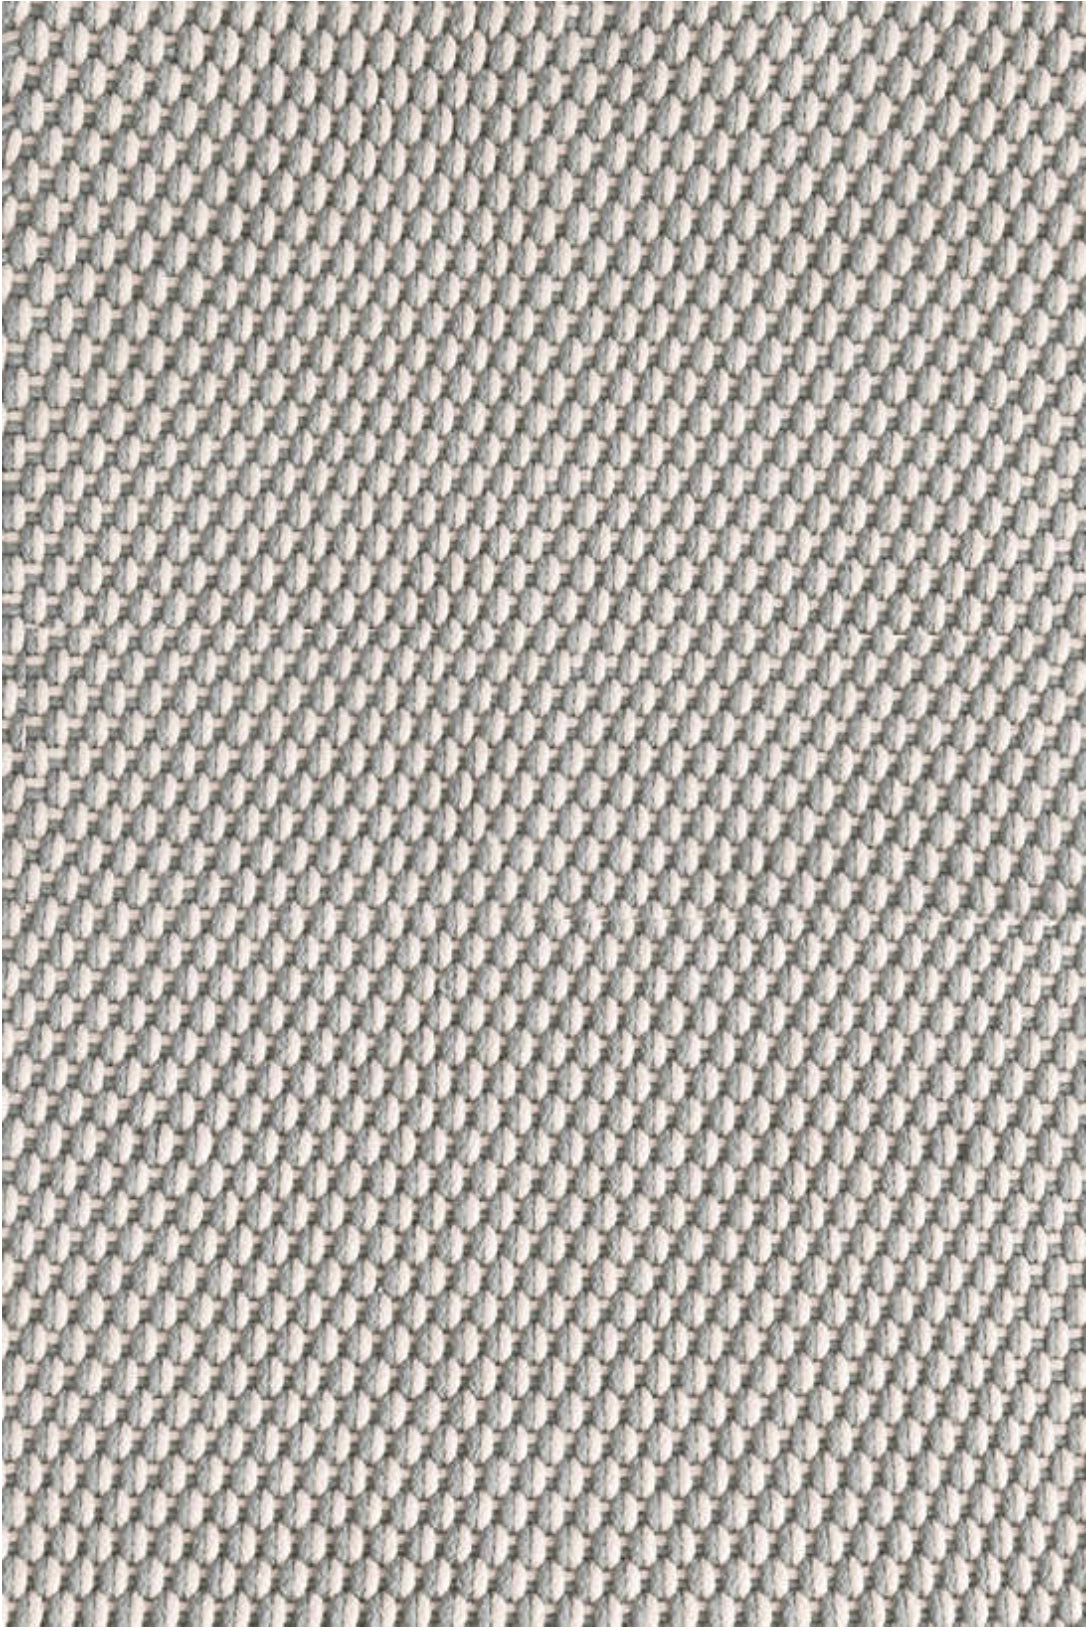 Two-Tone Rope Indoor Outdoor Rug | Platinum & Ivory | 10'x14'